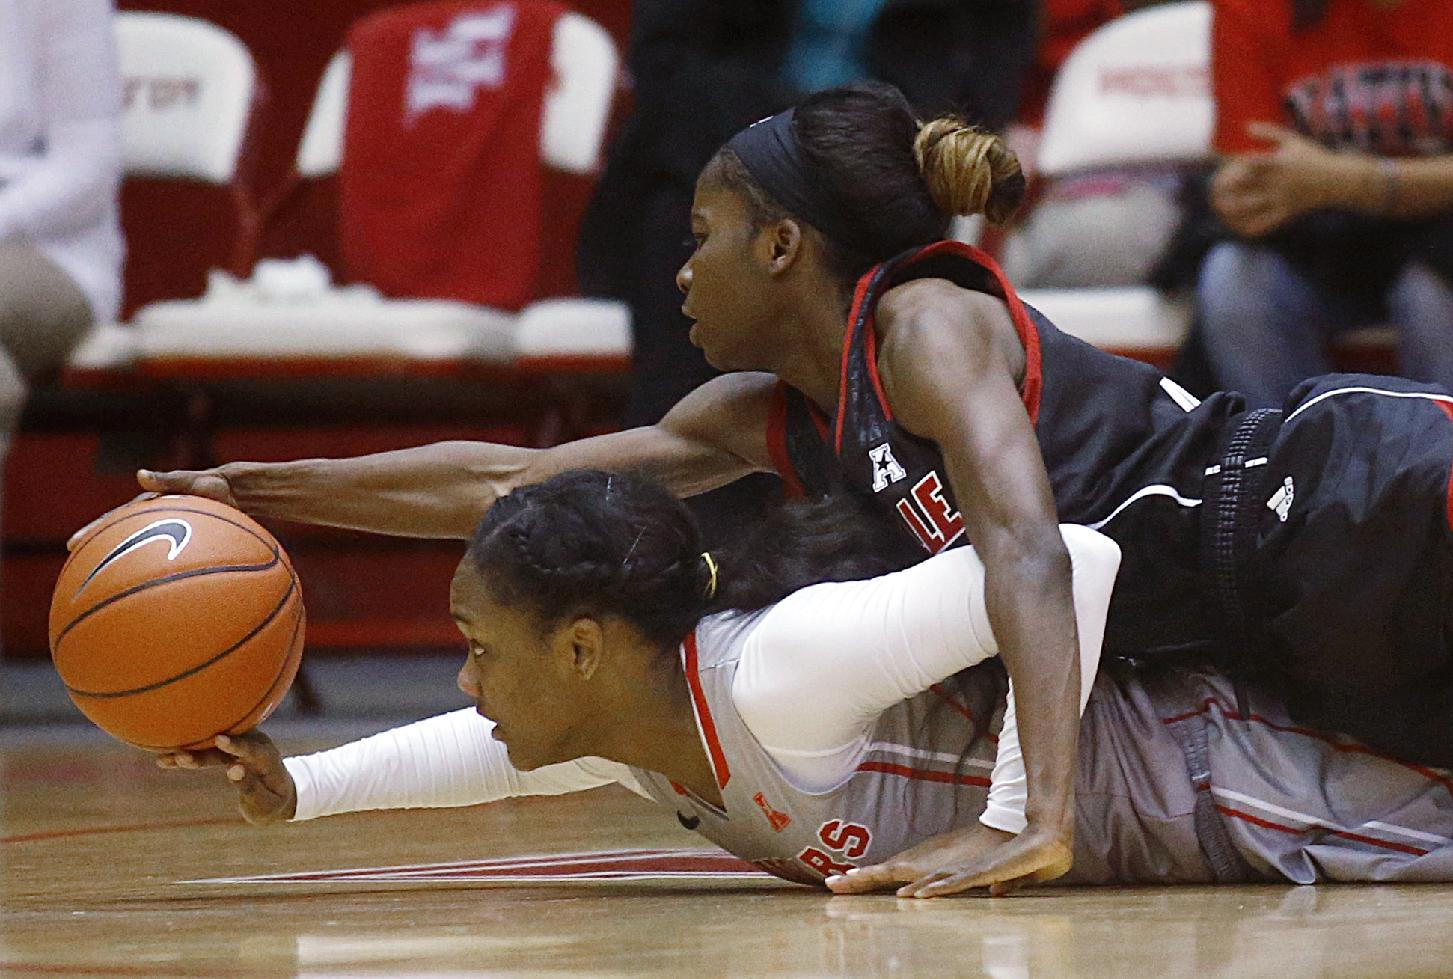 University of Houston forward Destini Texada, bottom, and Louisville guard Monny Niamke dive for a loose ball during the second half of an NCAA women's basketball game, Tuesday, Jan. 21, 2014, in Houston